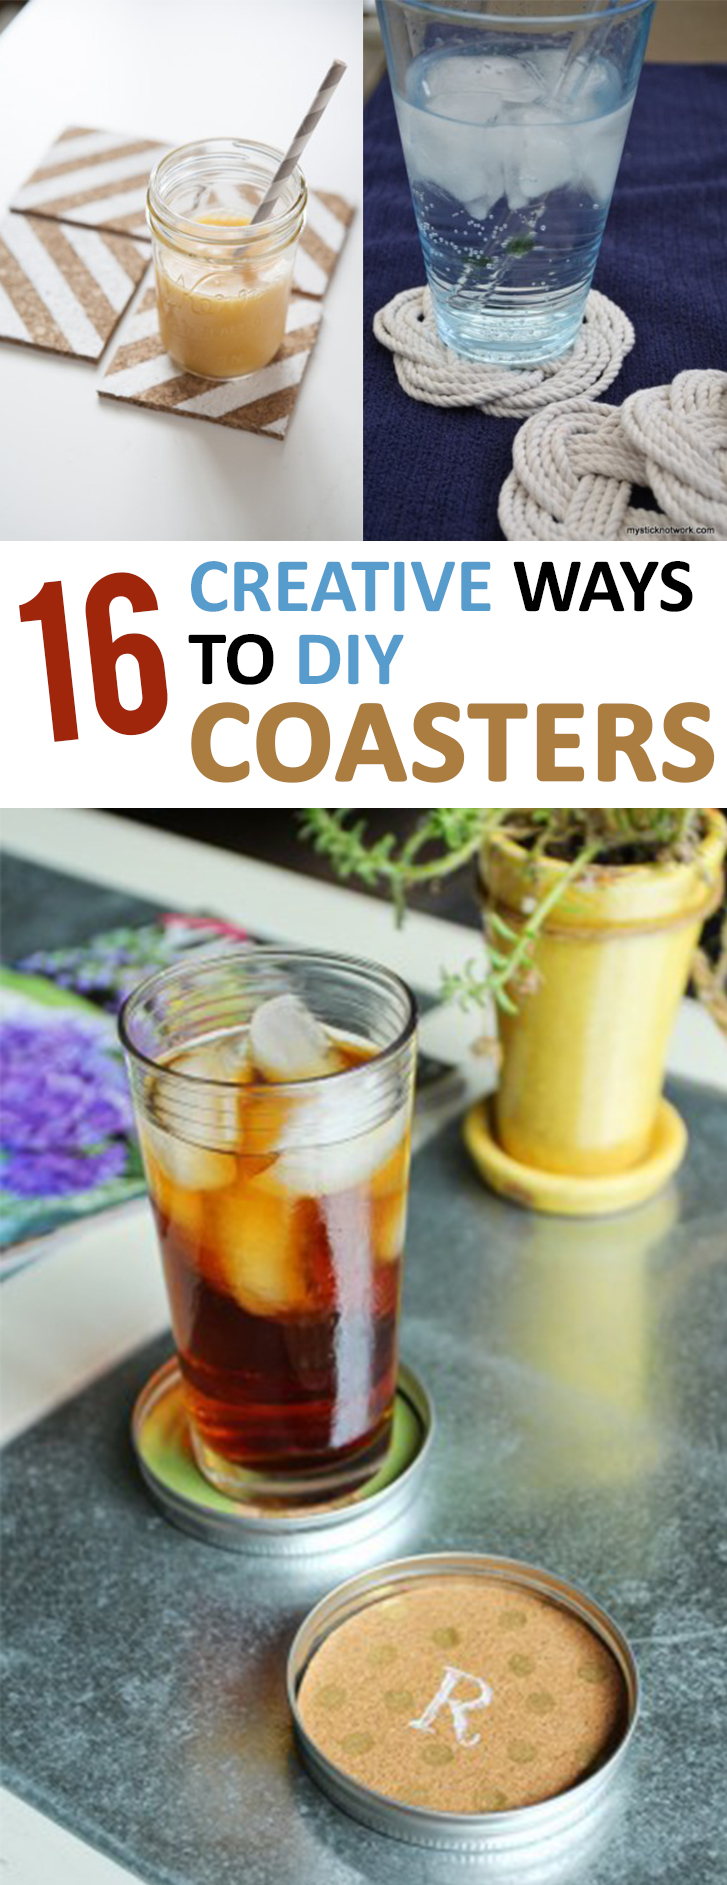 DIY, DIY home, coasters, coaster ideas, DIY coasters, easy DIY projects, popular pin, creative DIY ideas.